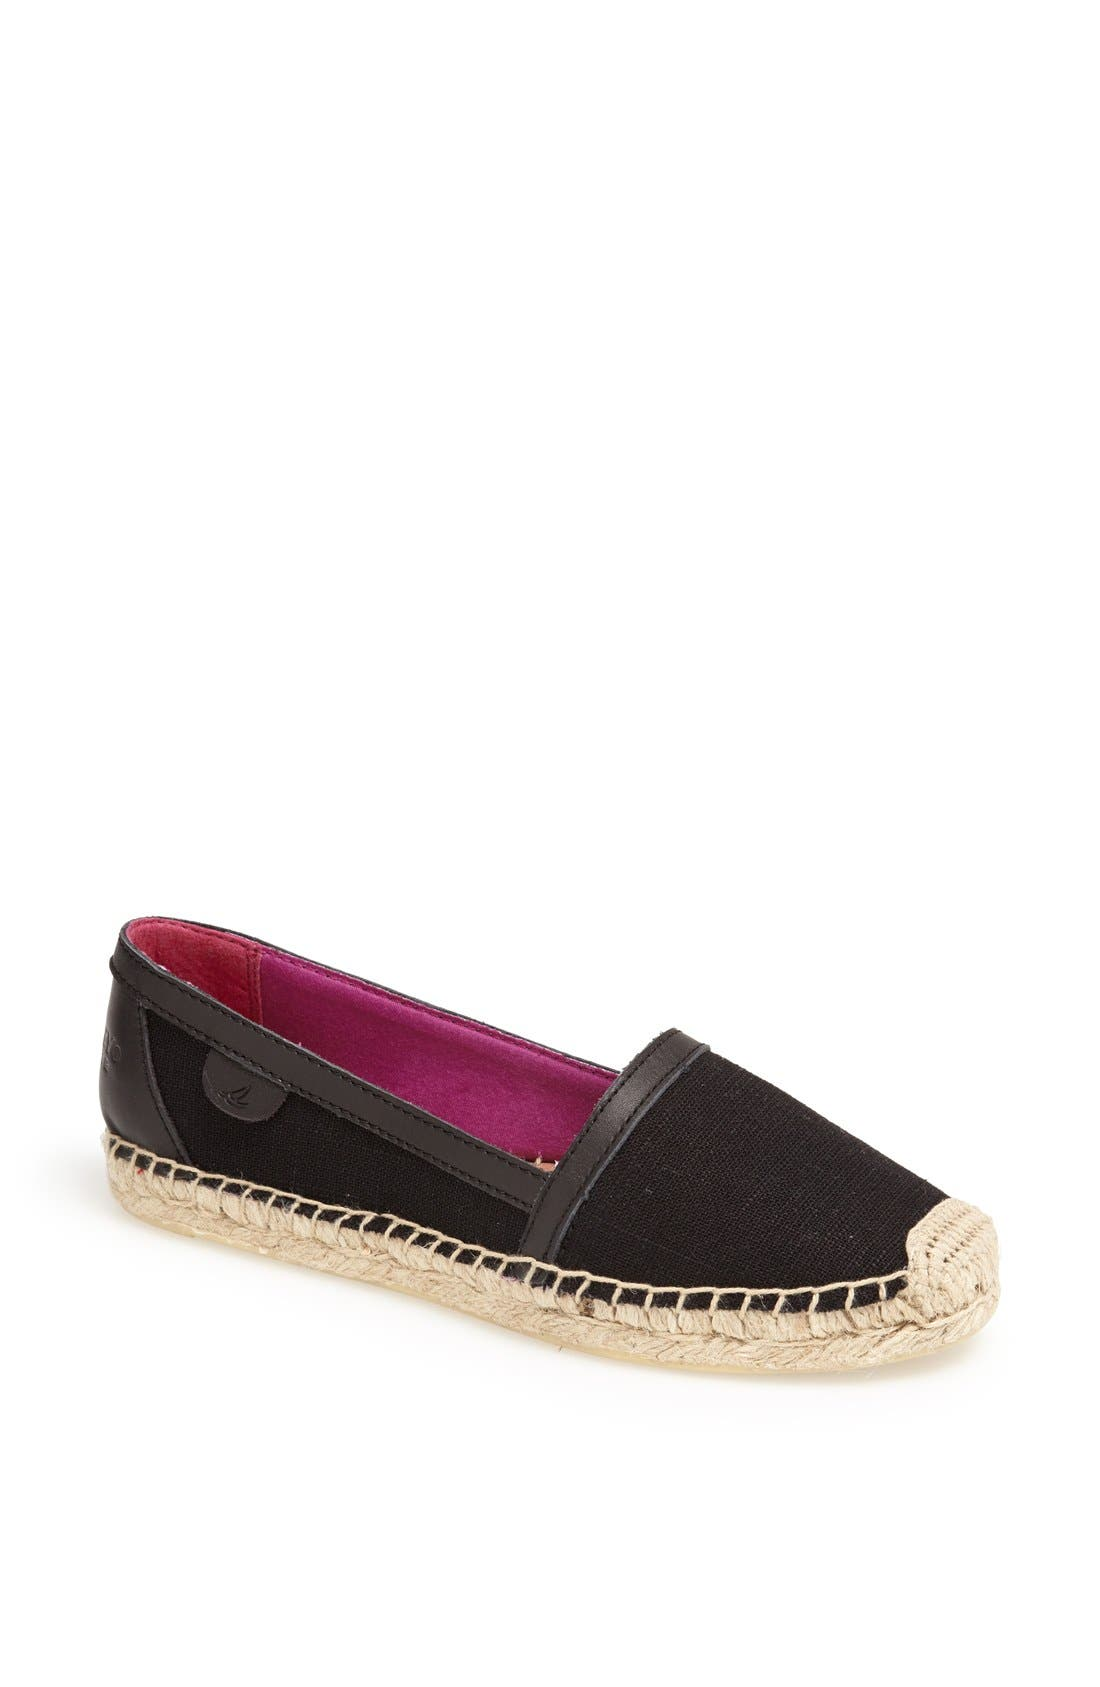 SPERRY, DANICA FLAT, Main thumbnail 1, color, 001